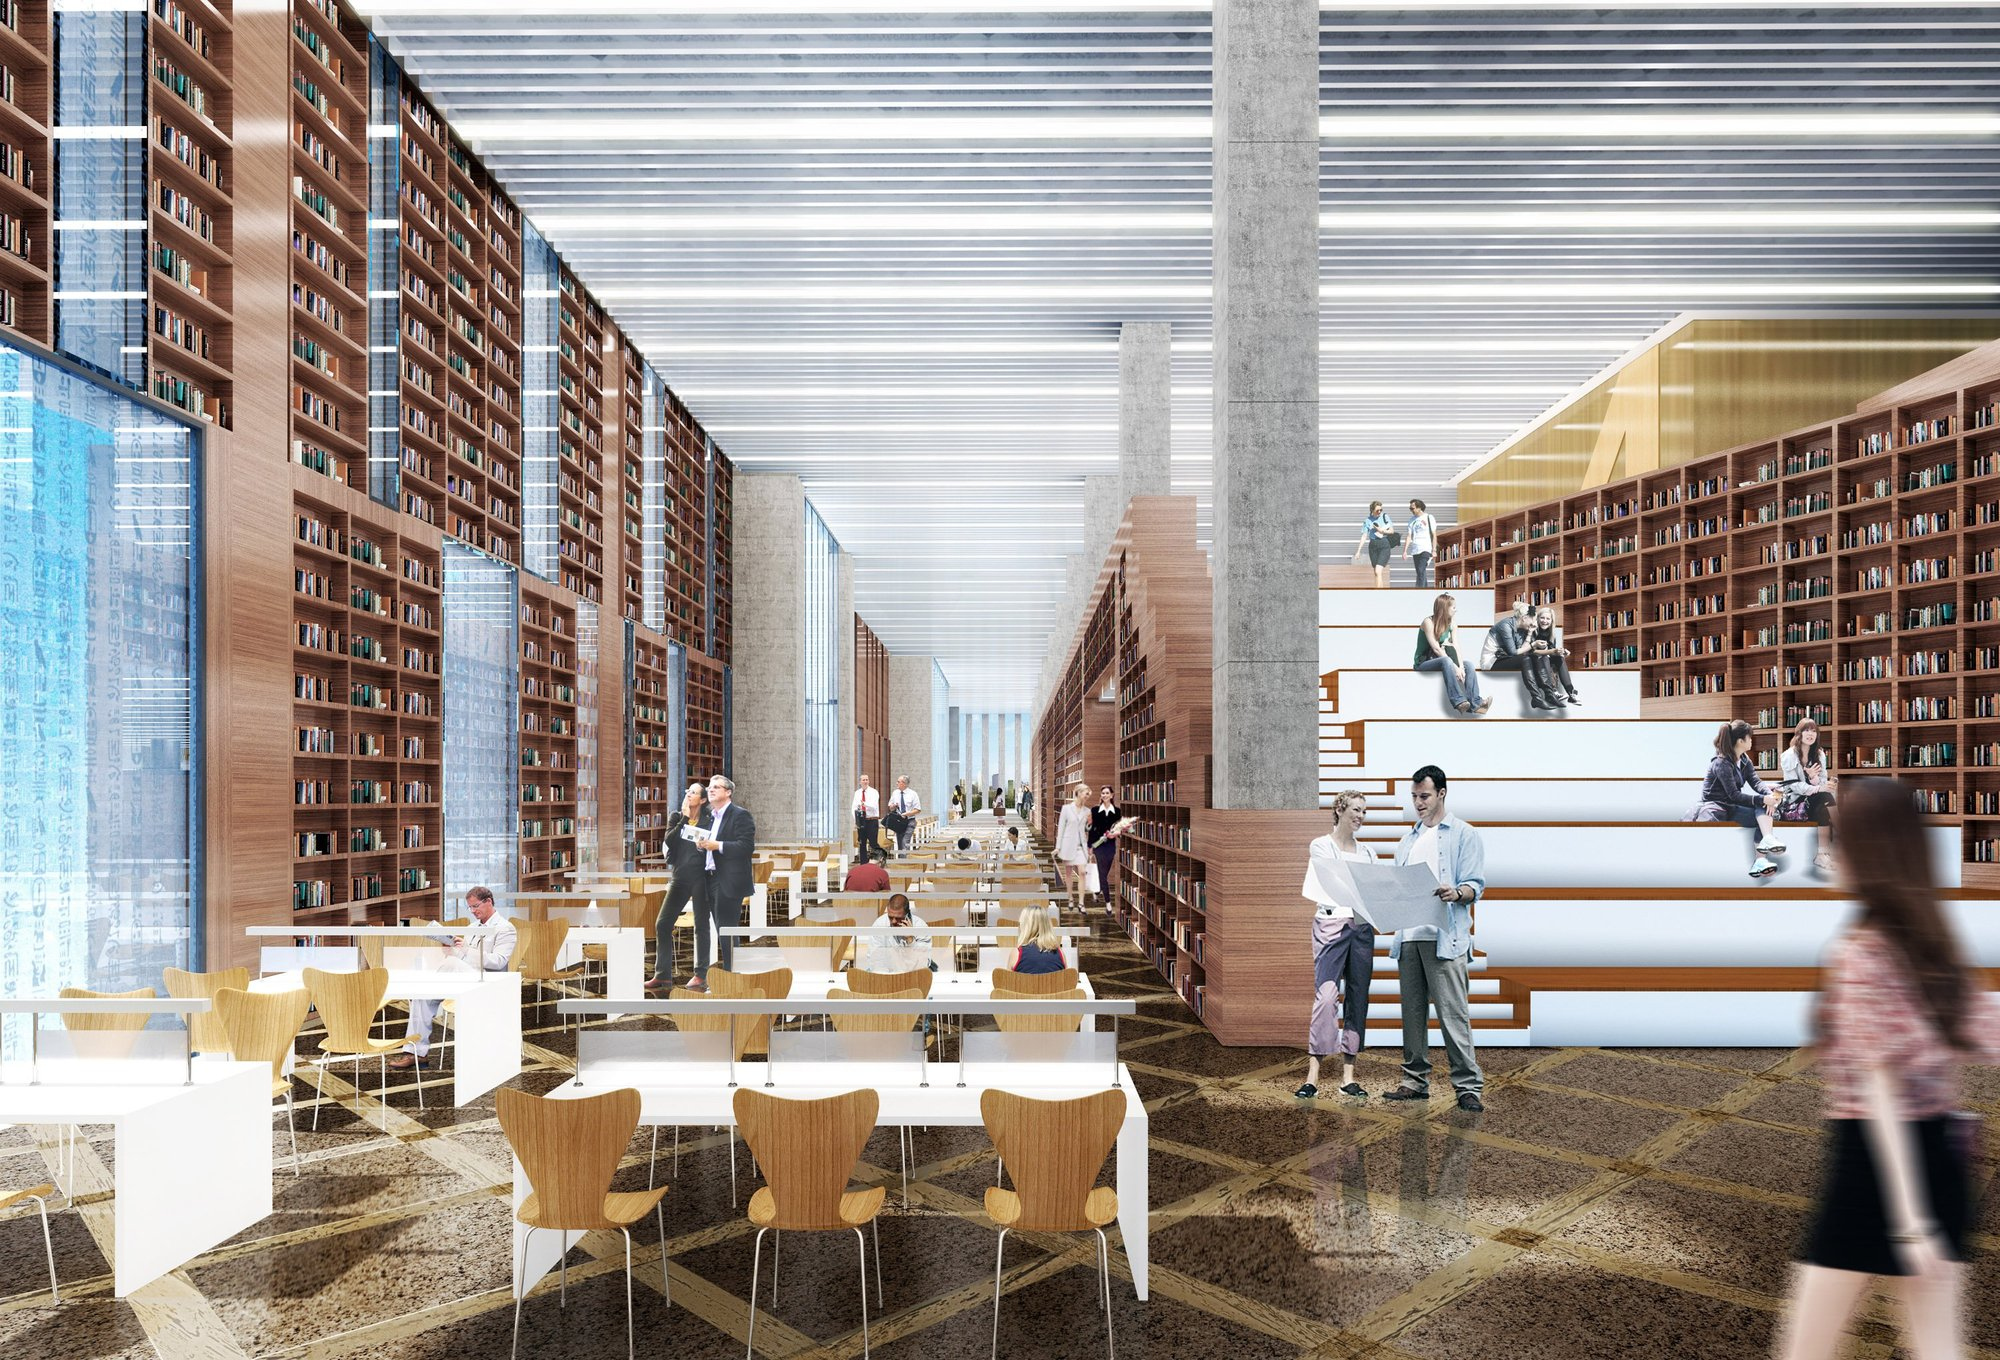 Gallery of Beijing Agriculture University Library Winning